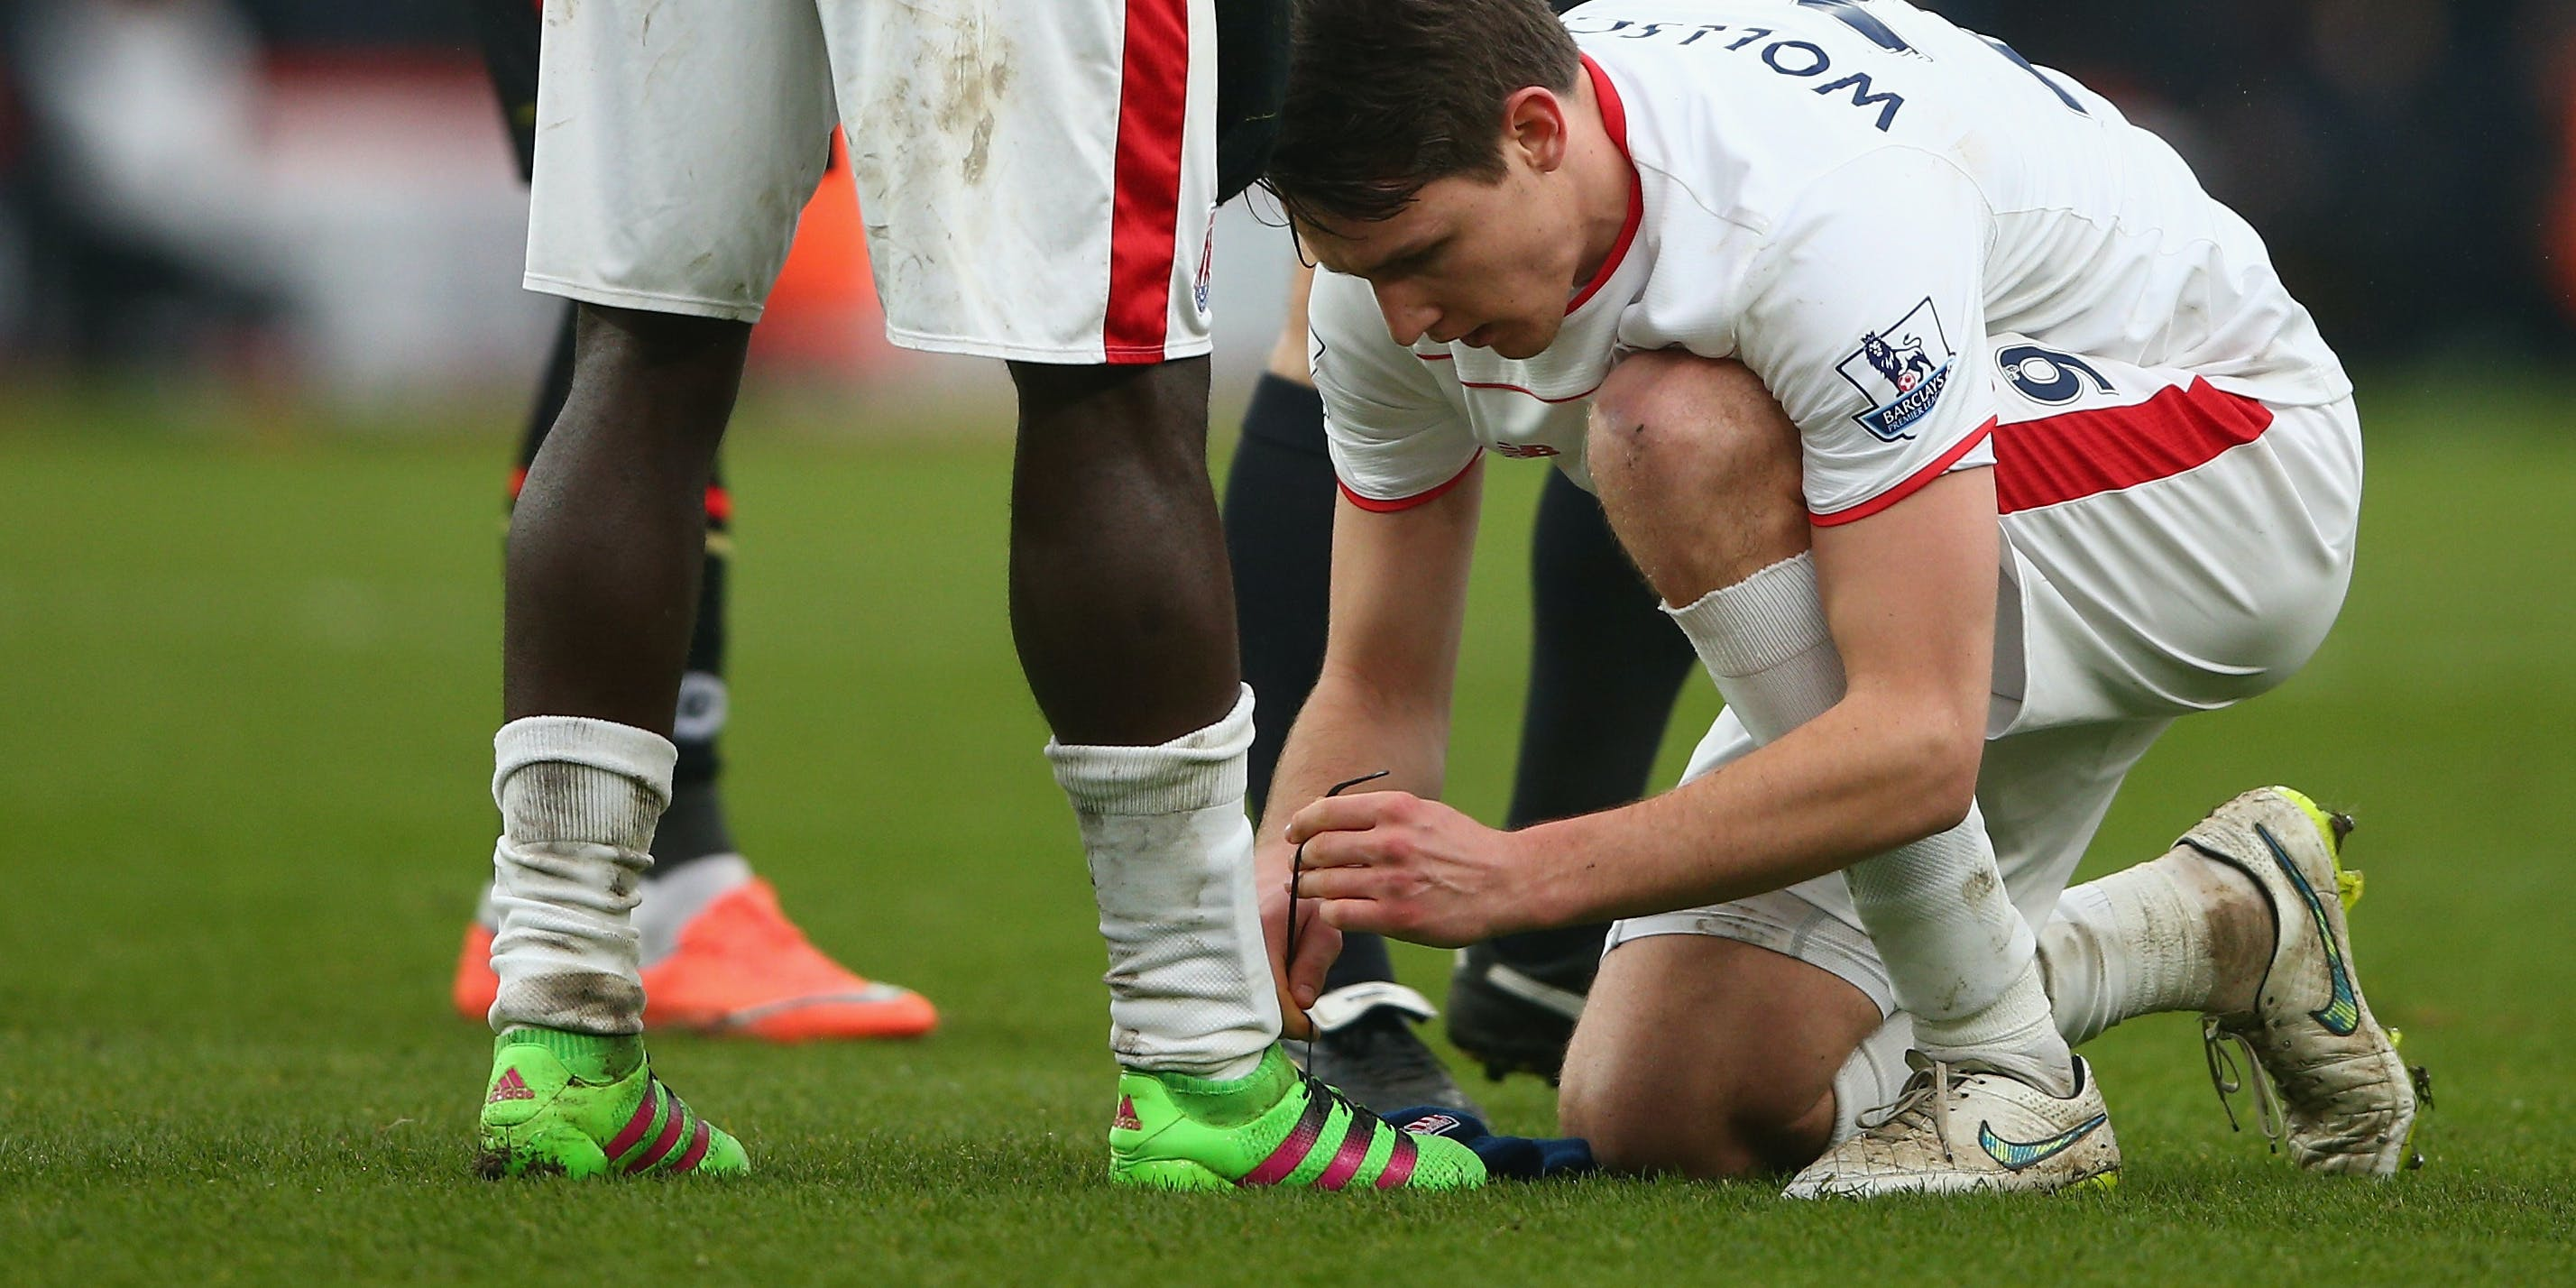 BOURNEMOUTH, ENGLAND - FEBRUARY 13: Philipp Wollscheid of Stoke City does up the shoelaces for Mame Biram Diouf during the Barclays Premier League match between A.F.C. Bournemouth and Stoke City at Vitality Stadium on February 13, 2016 in Bournemouth, England.  (Photo by Paul Gilham/Getty Images)